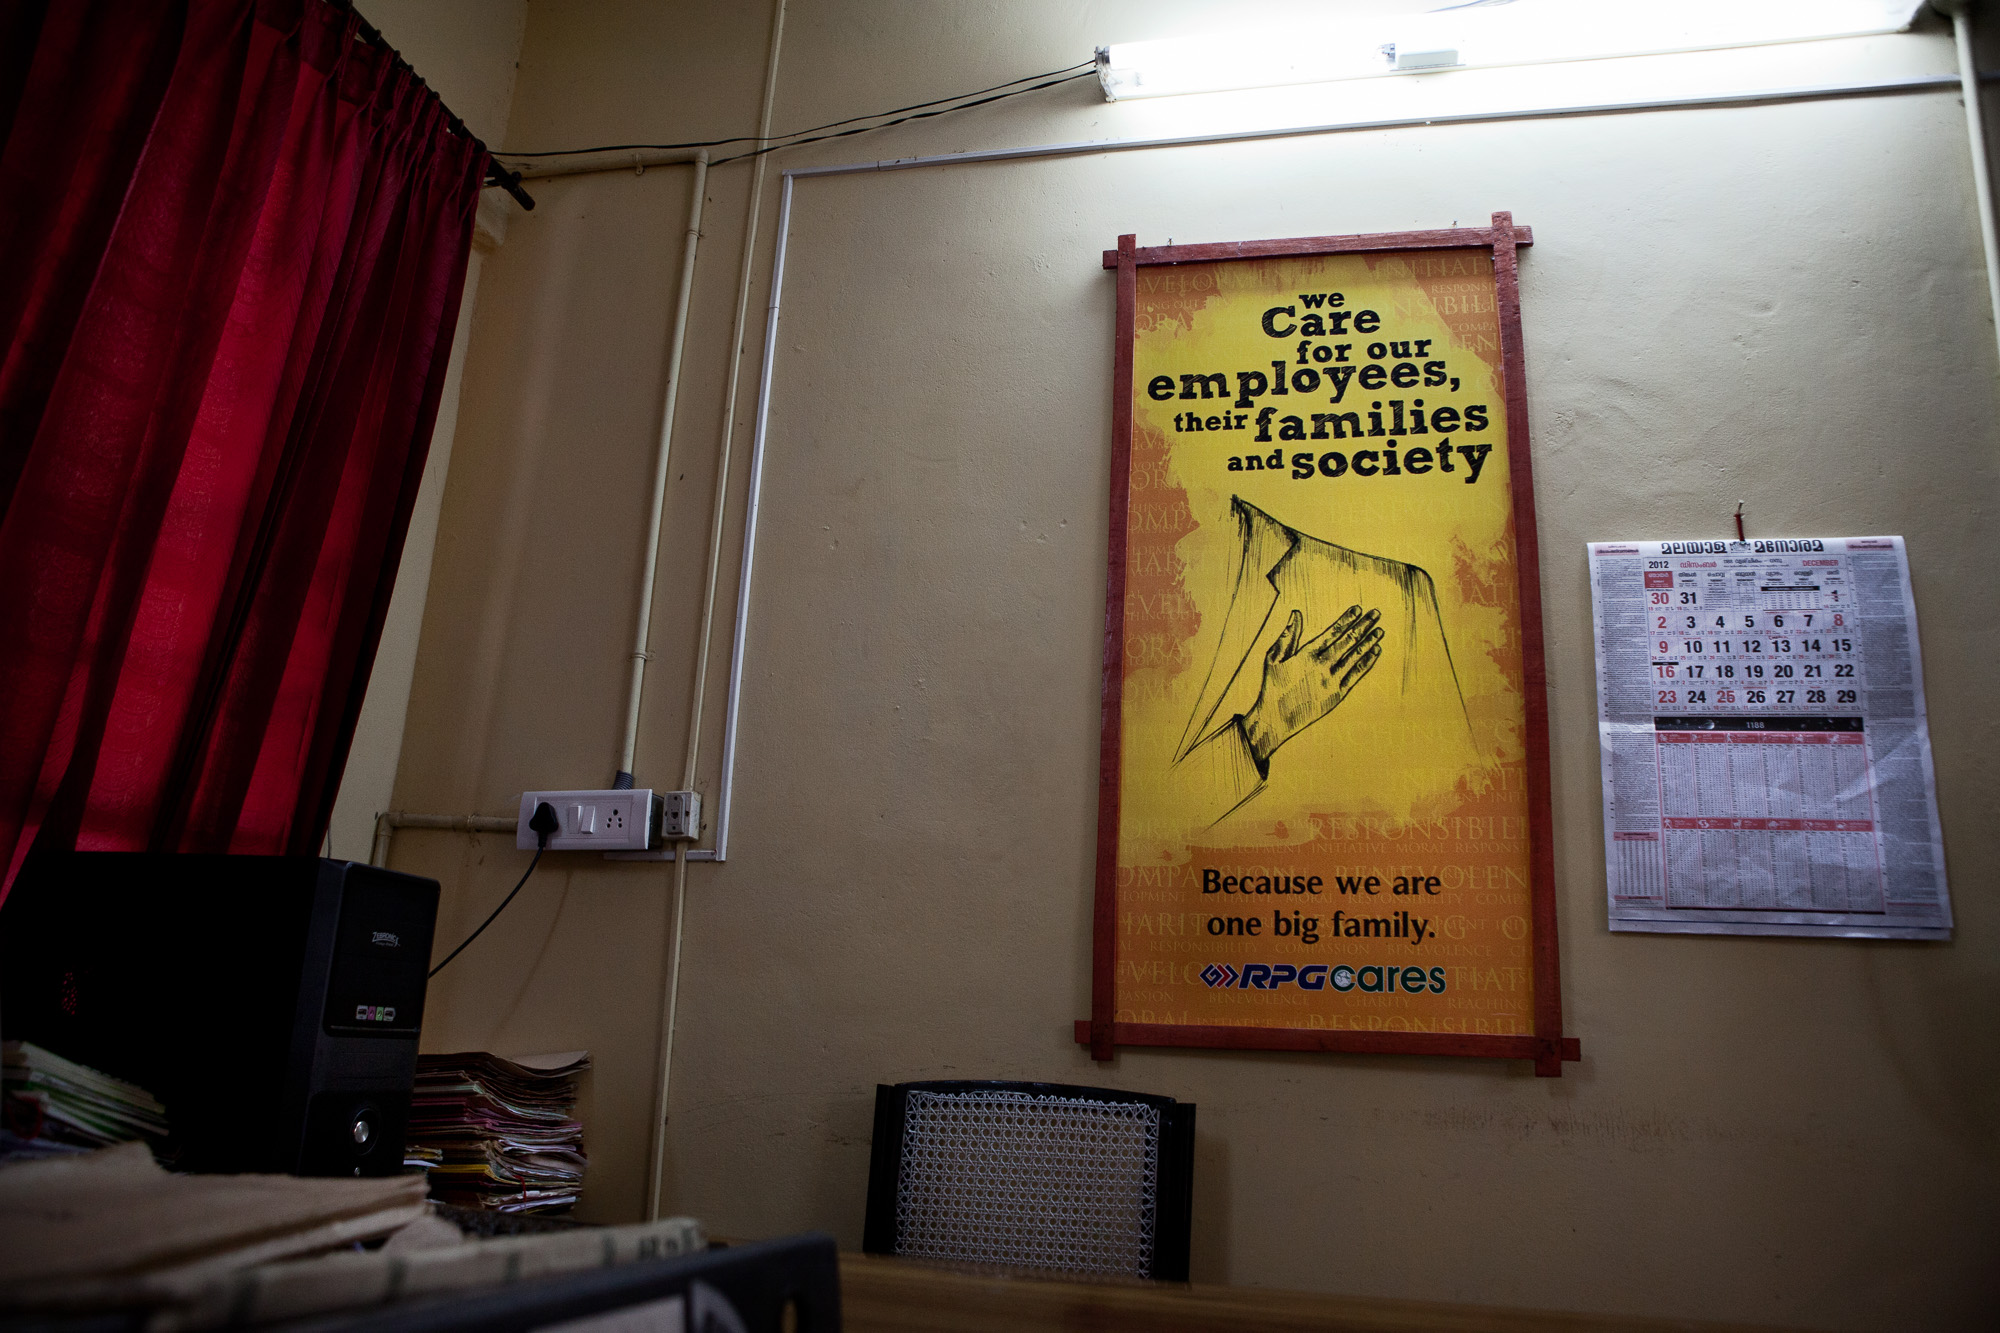 One of many vibrant welfare posters which is displayed clearly in the estate offices.  The estate has an extremely dedicated approach to the welfare of their staff and dependants many of whom have been with them through generations.   The welfare benefits they provide greatly exceed that which the state government legislates.